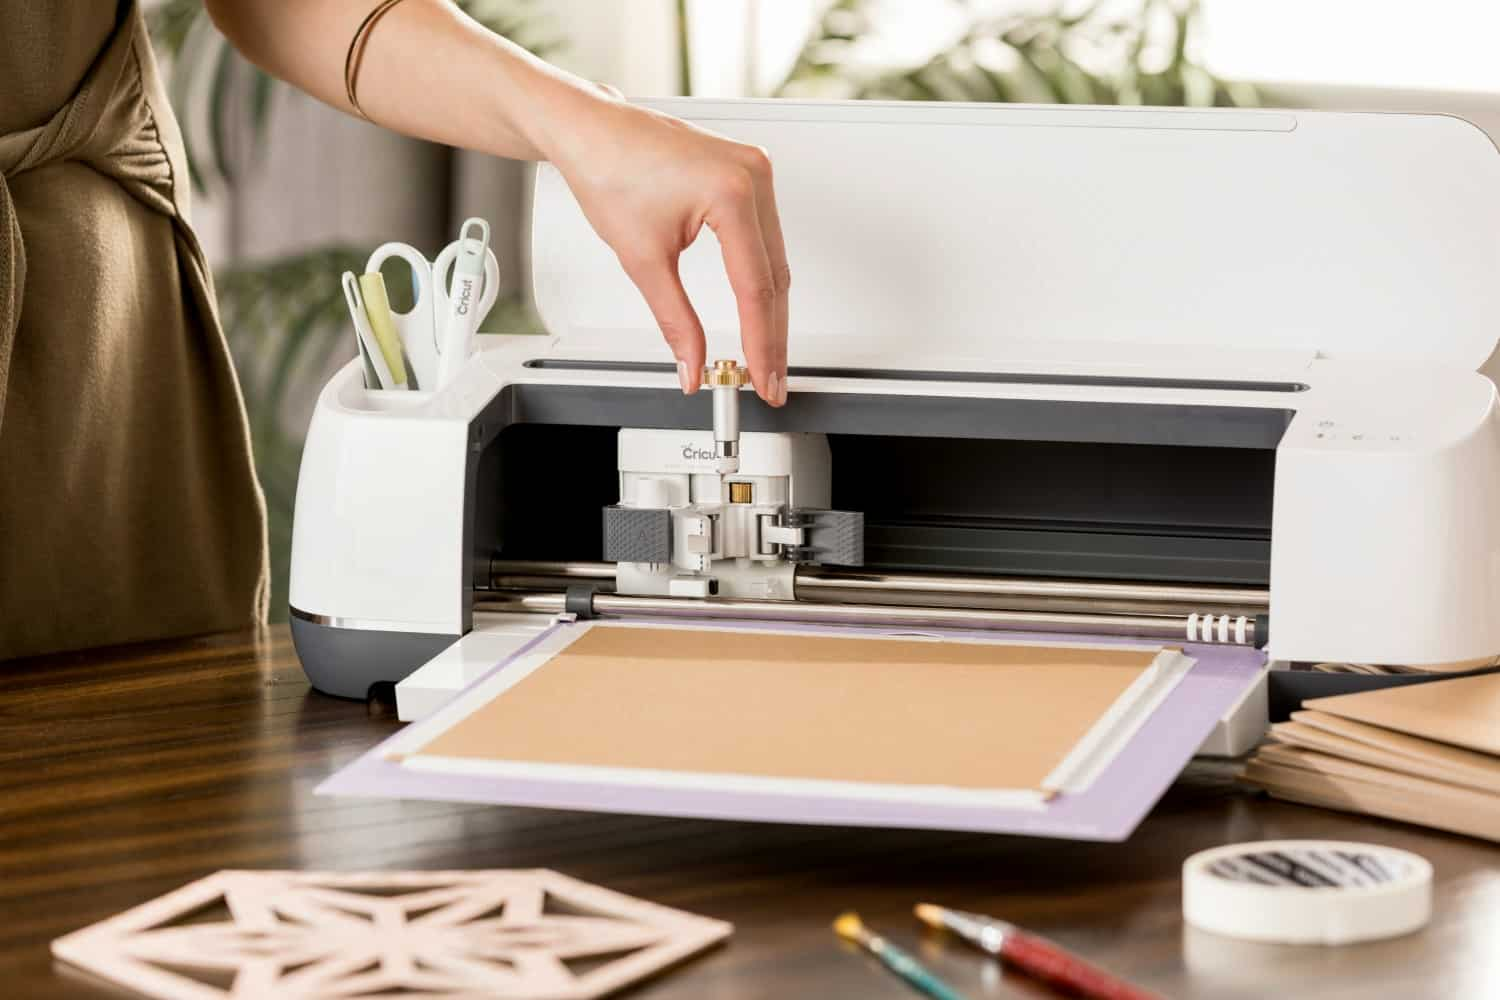 how long do cricut blades last